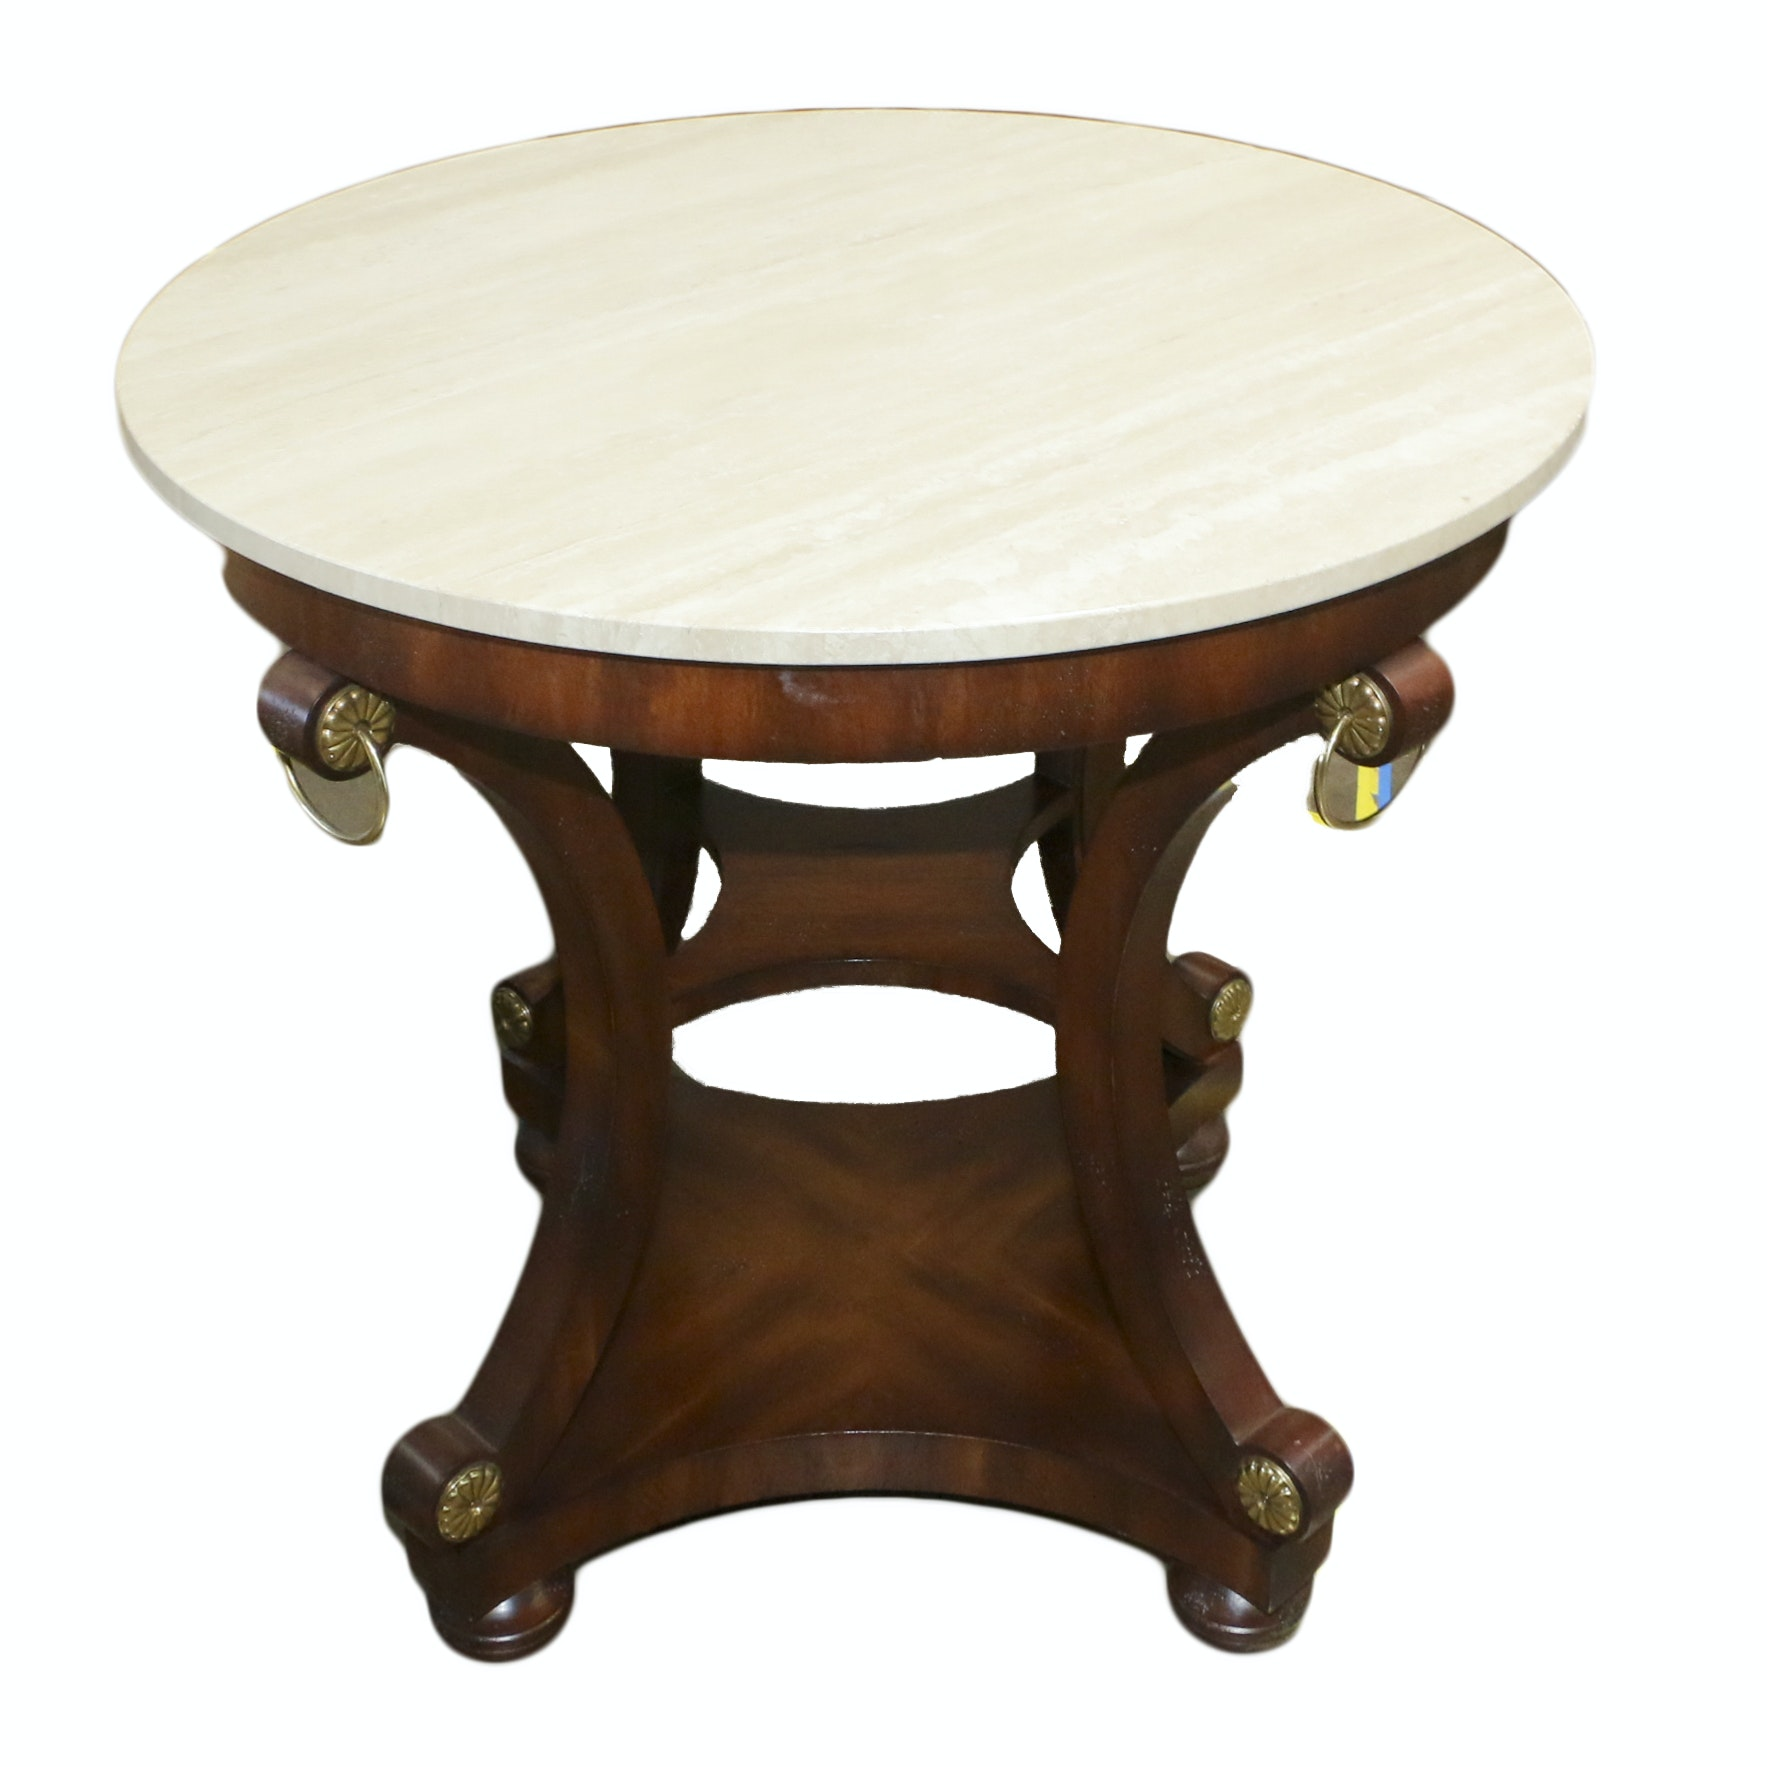 Regency Style Wood and Stone Side Table, 21st Century